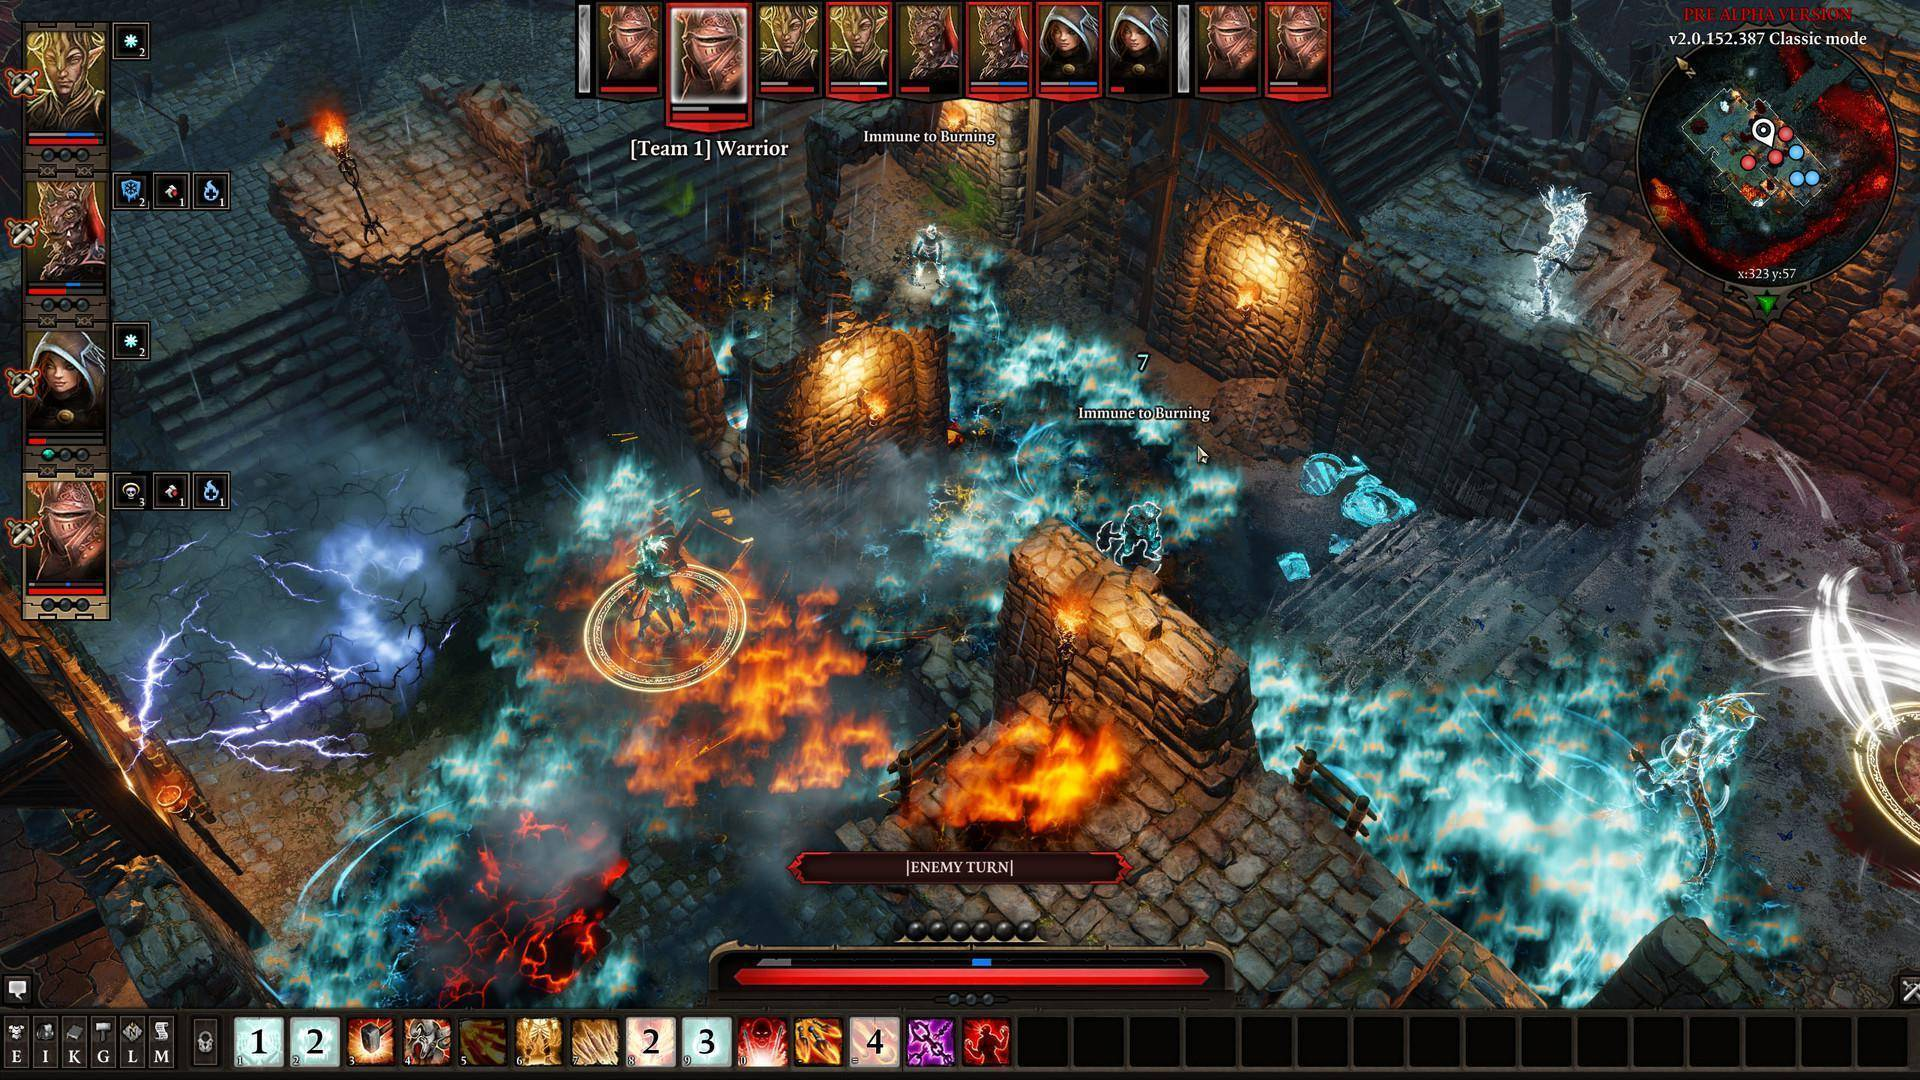 Buy Divinity Original Sin 2 pc cd key for Steam - compare prices